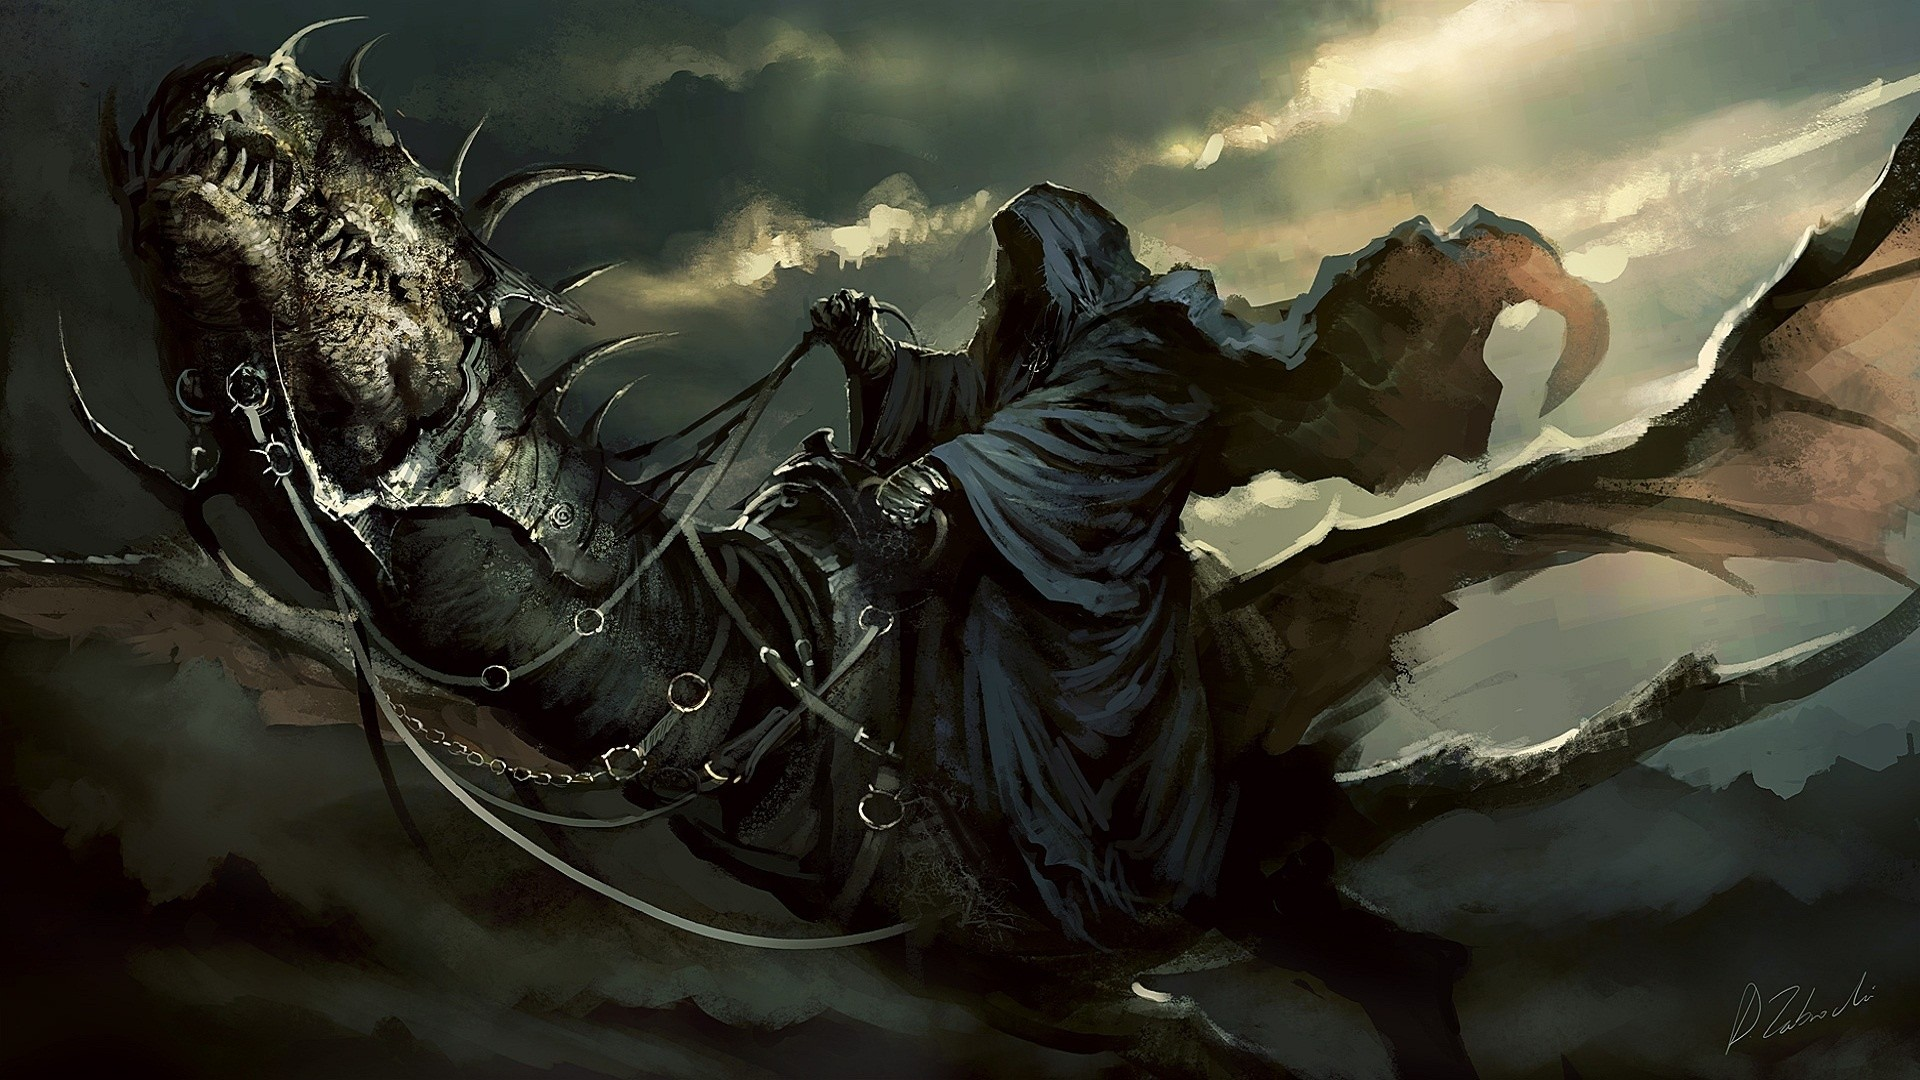 Res: 1920x1080, Lord of the rings reaper dragon dark wallpaper |  | 136915 |  WallpaperUP